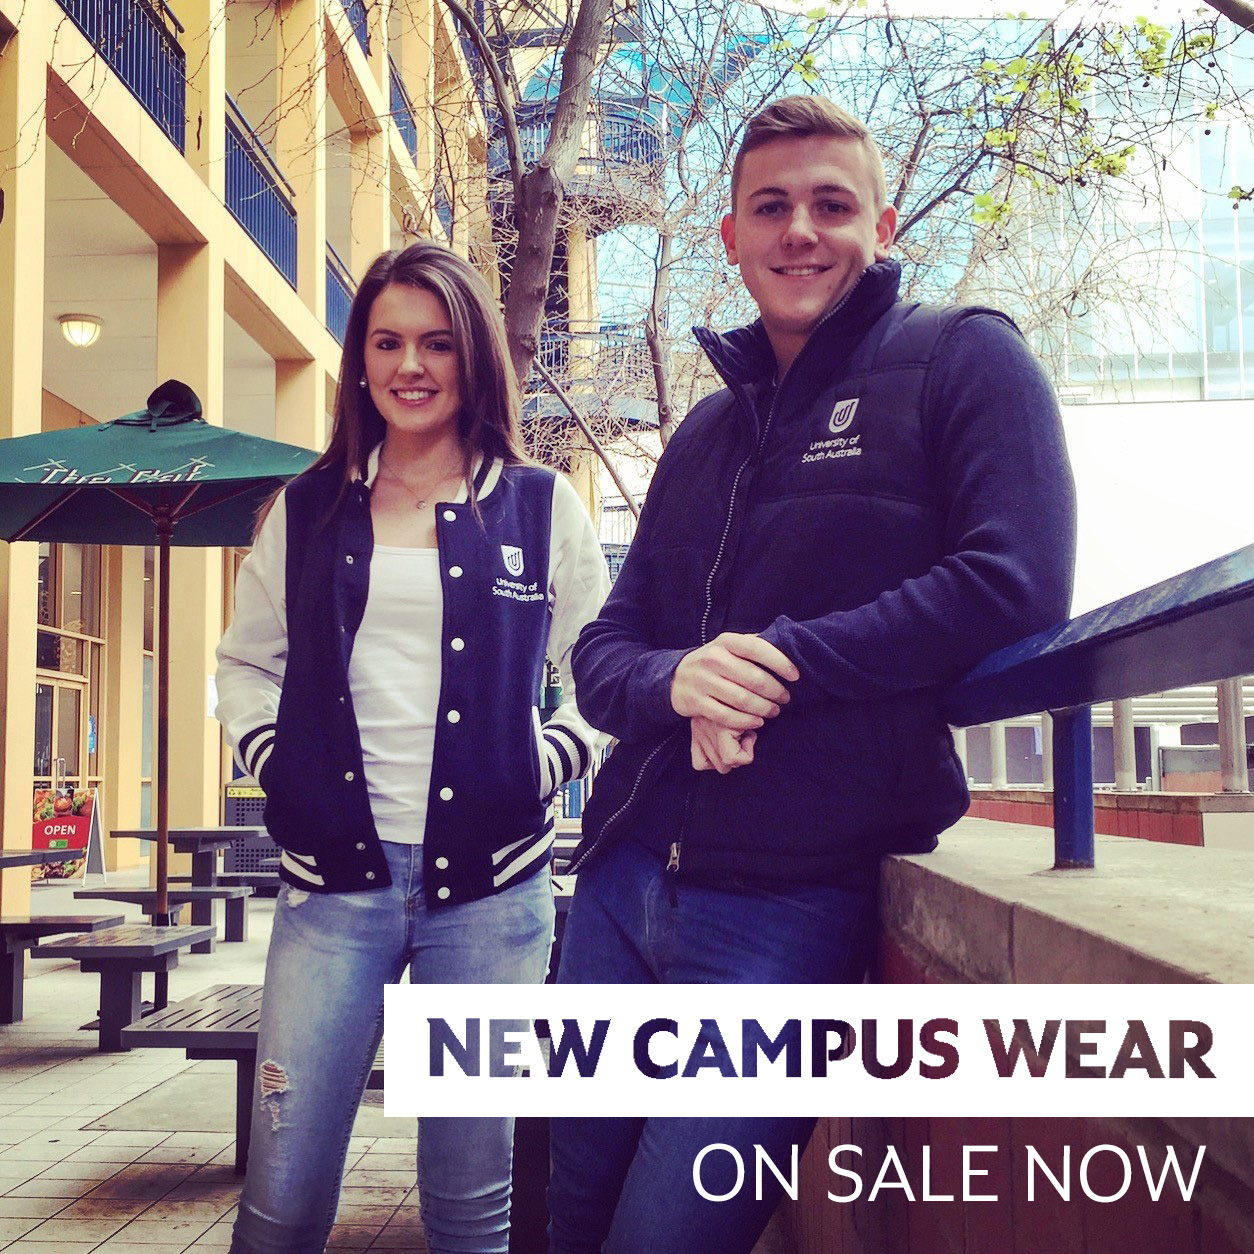 Campus merchandise sale